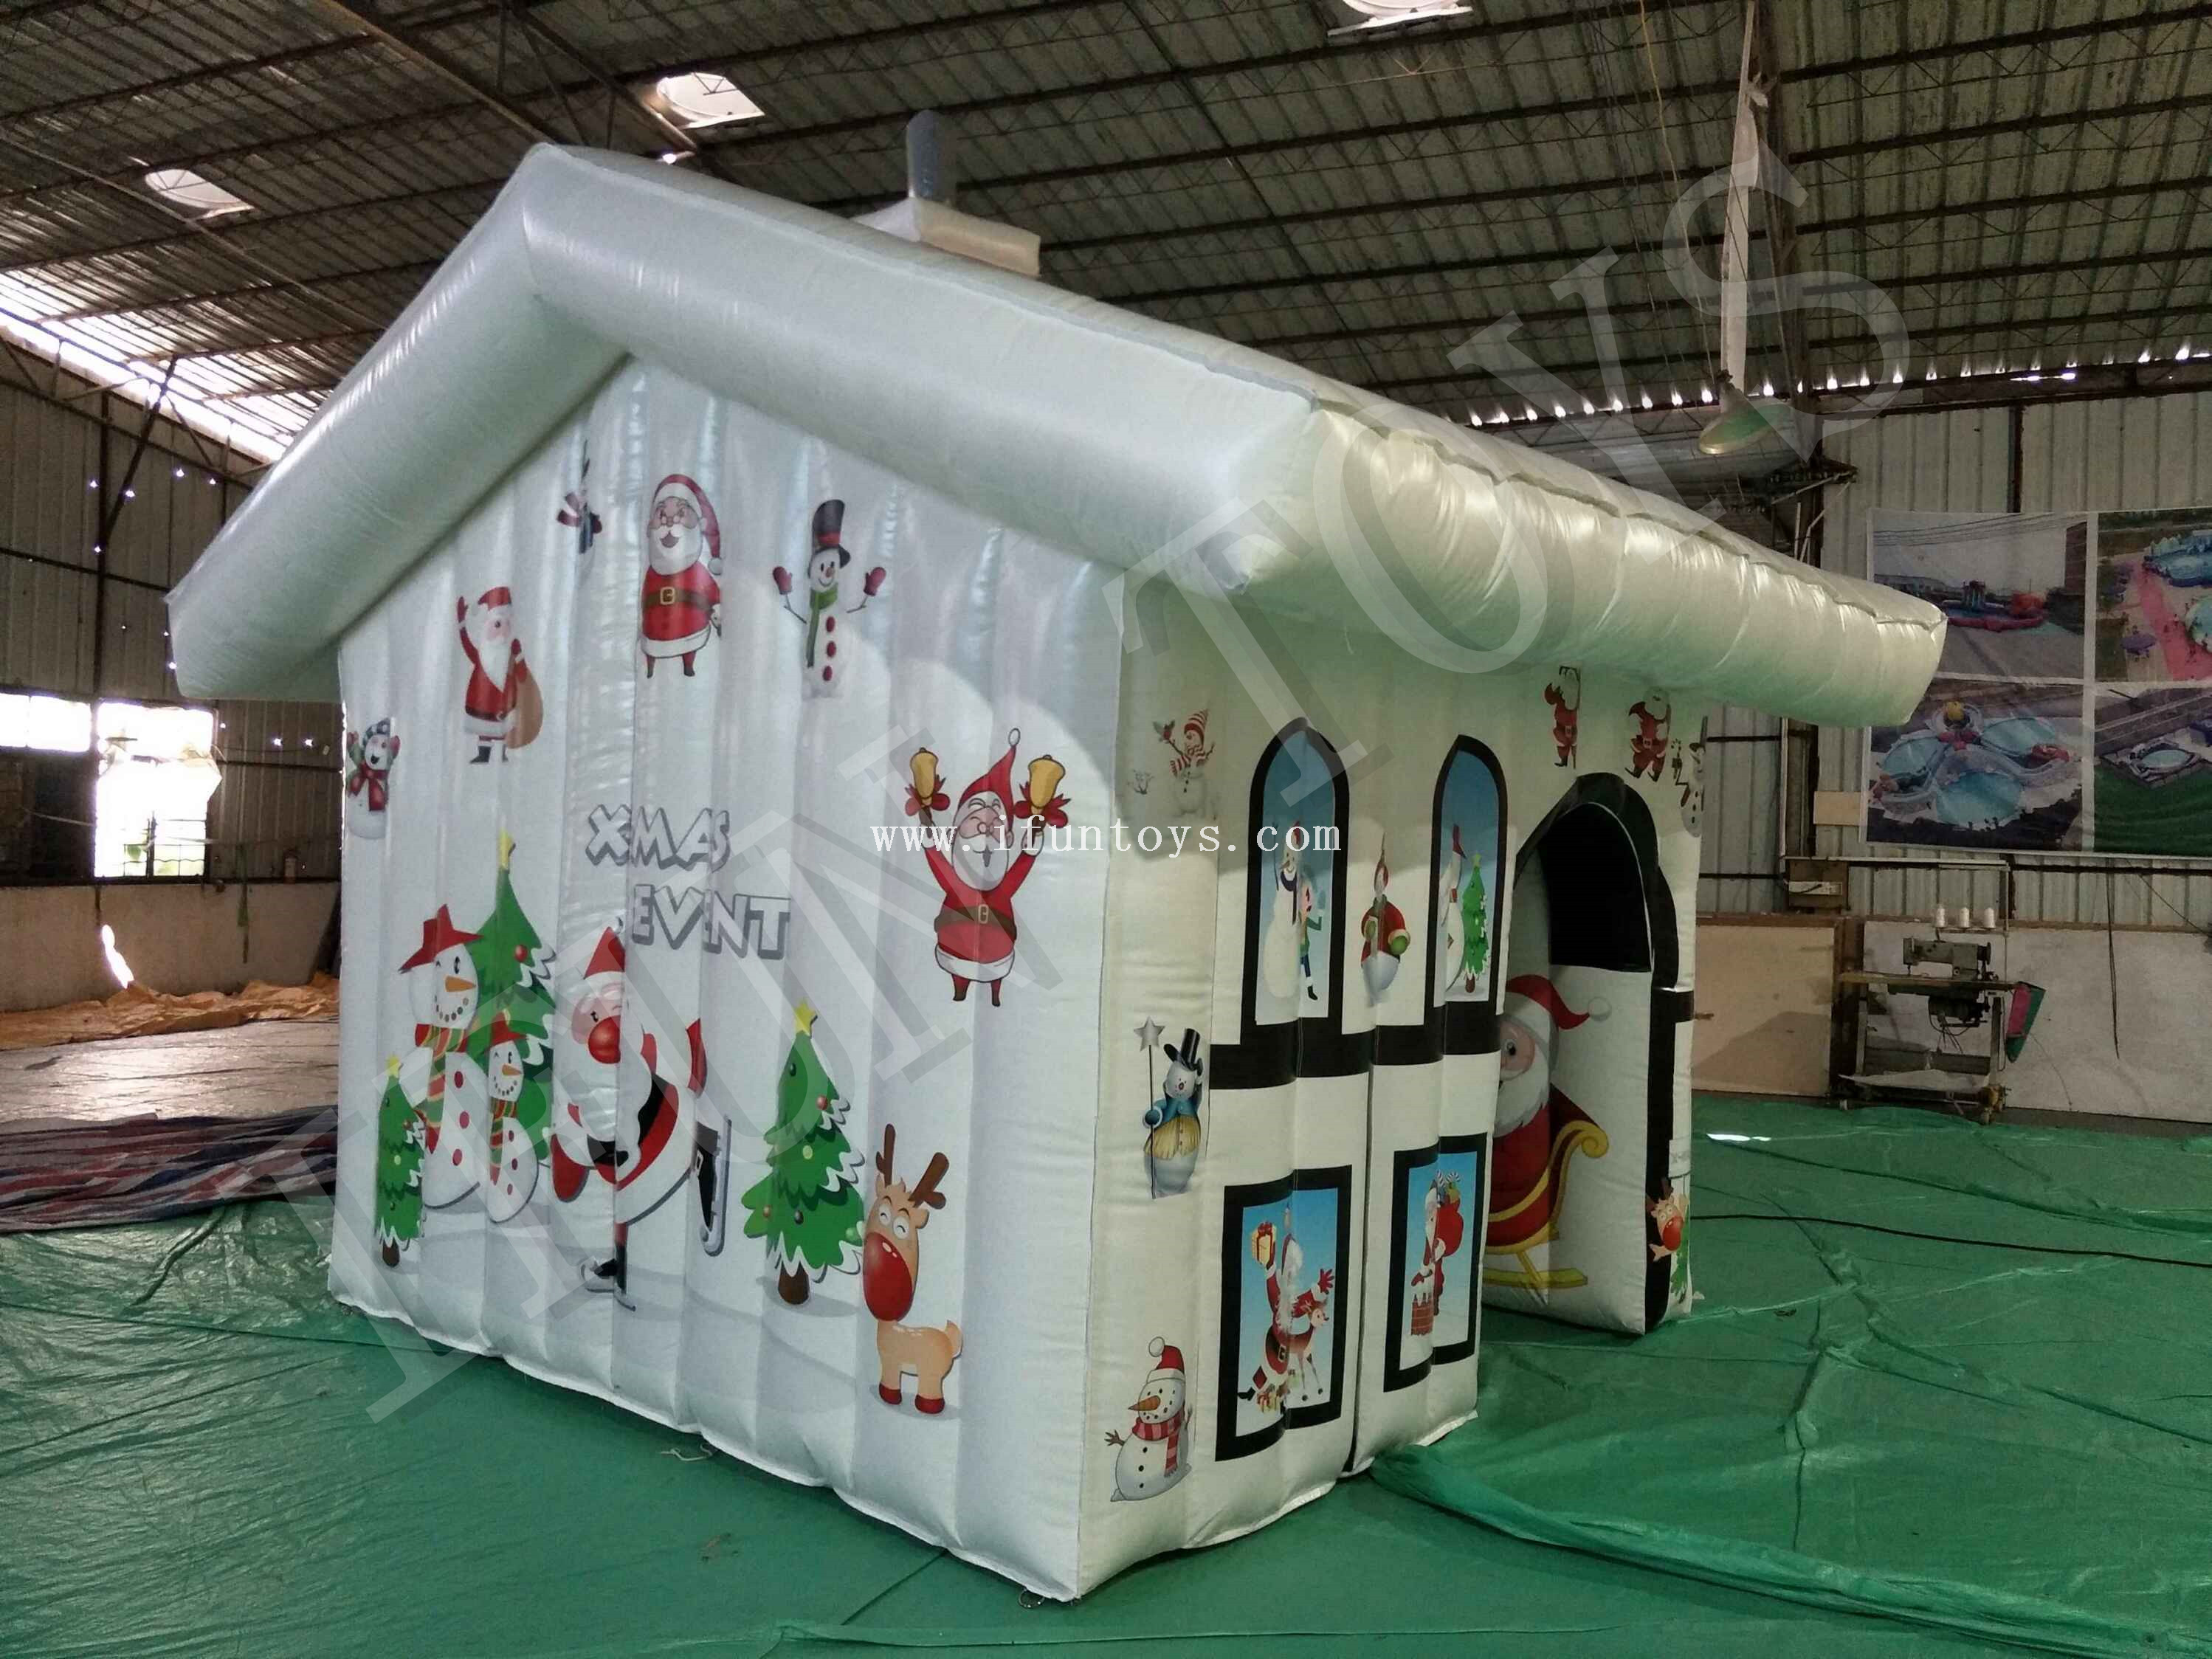 Xmas Inflatable Santa's Grotto / Inflatable Christmas House / Santa House Tent for Sale